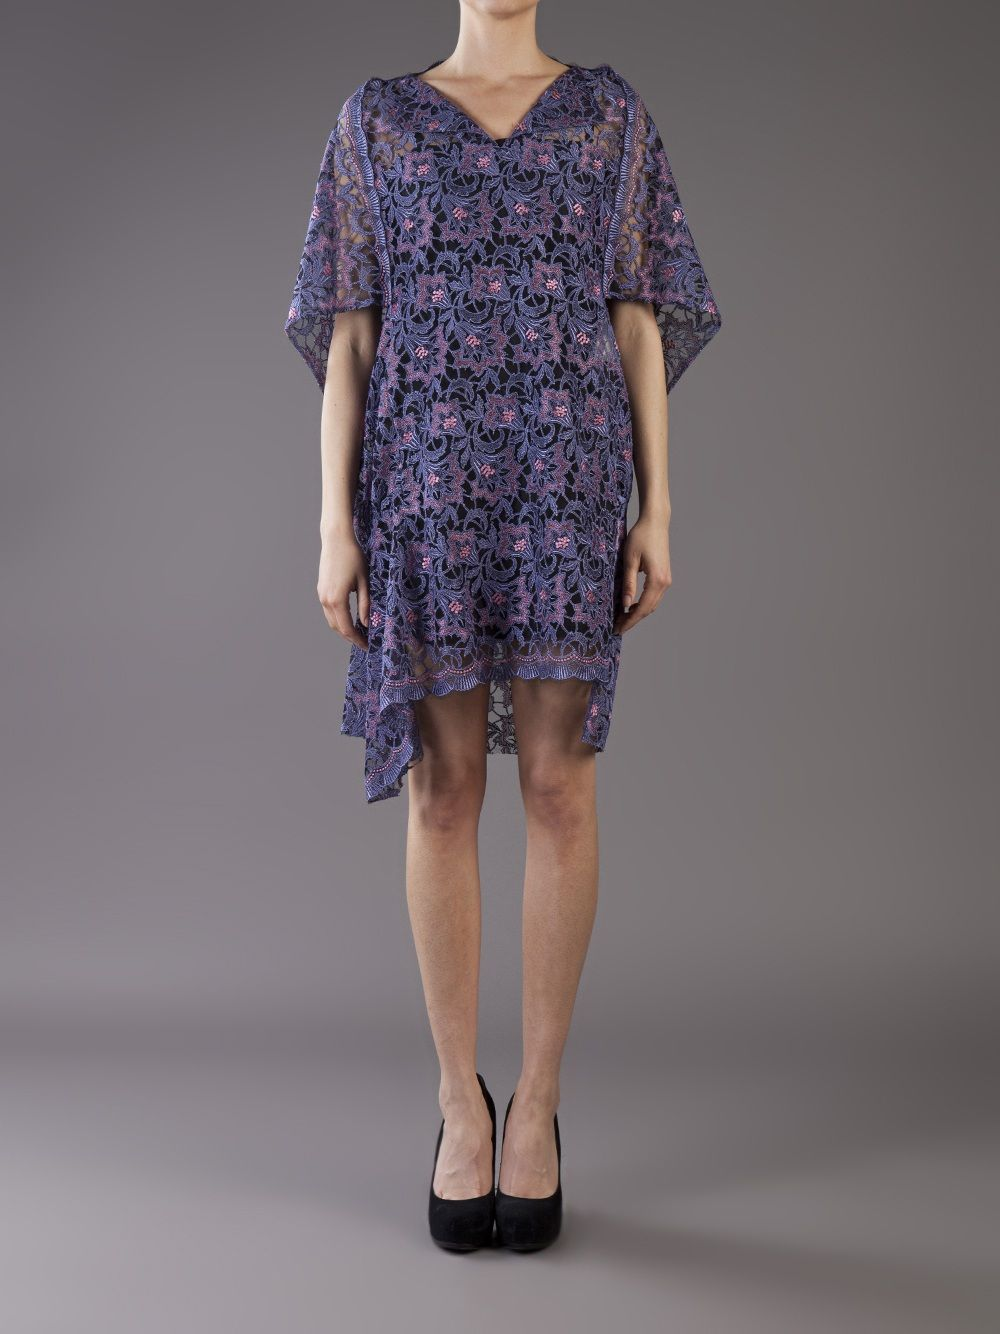 Junya Watanabe Lace Dress Clotheshorse Dresses Casual